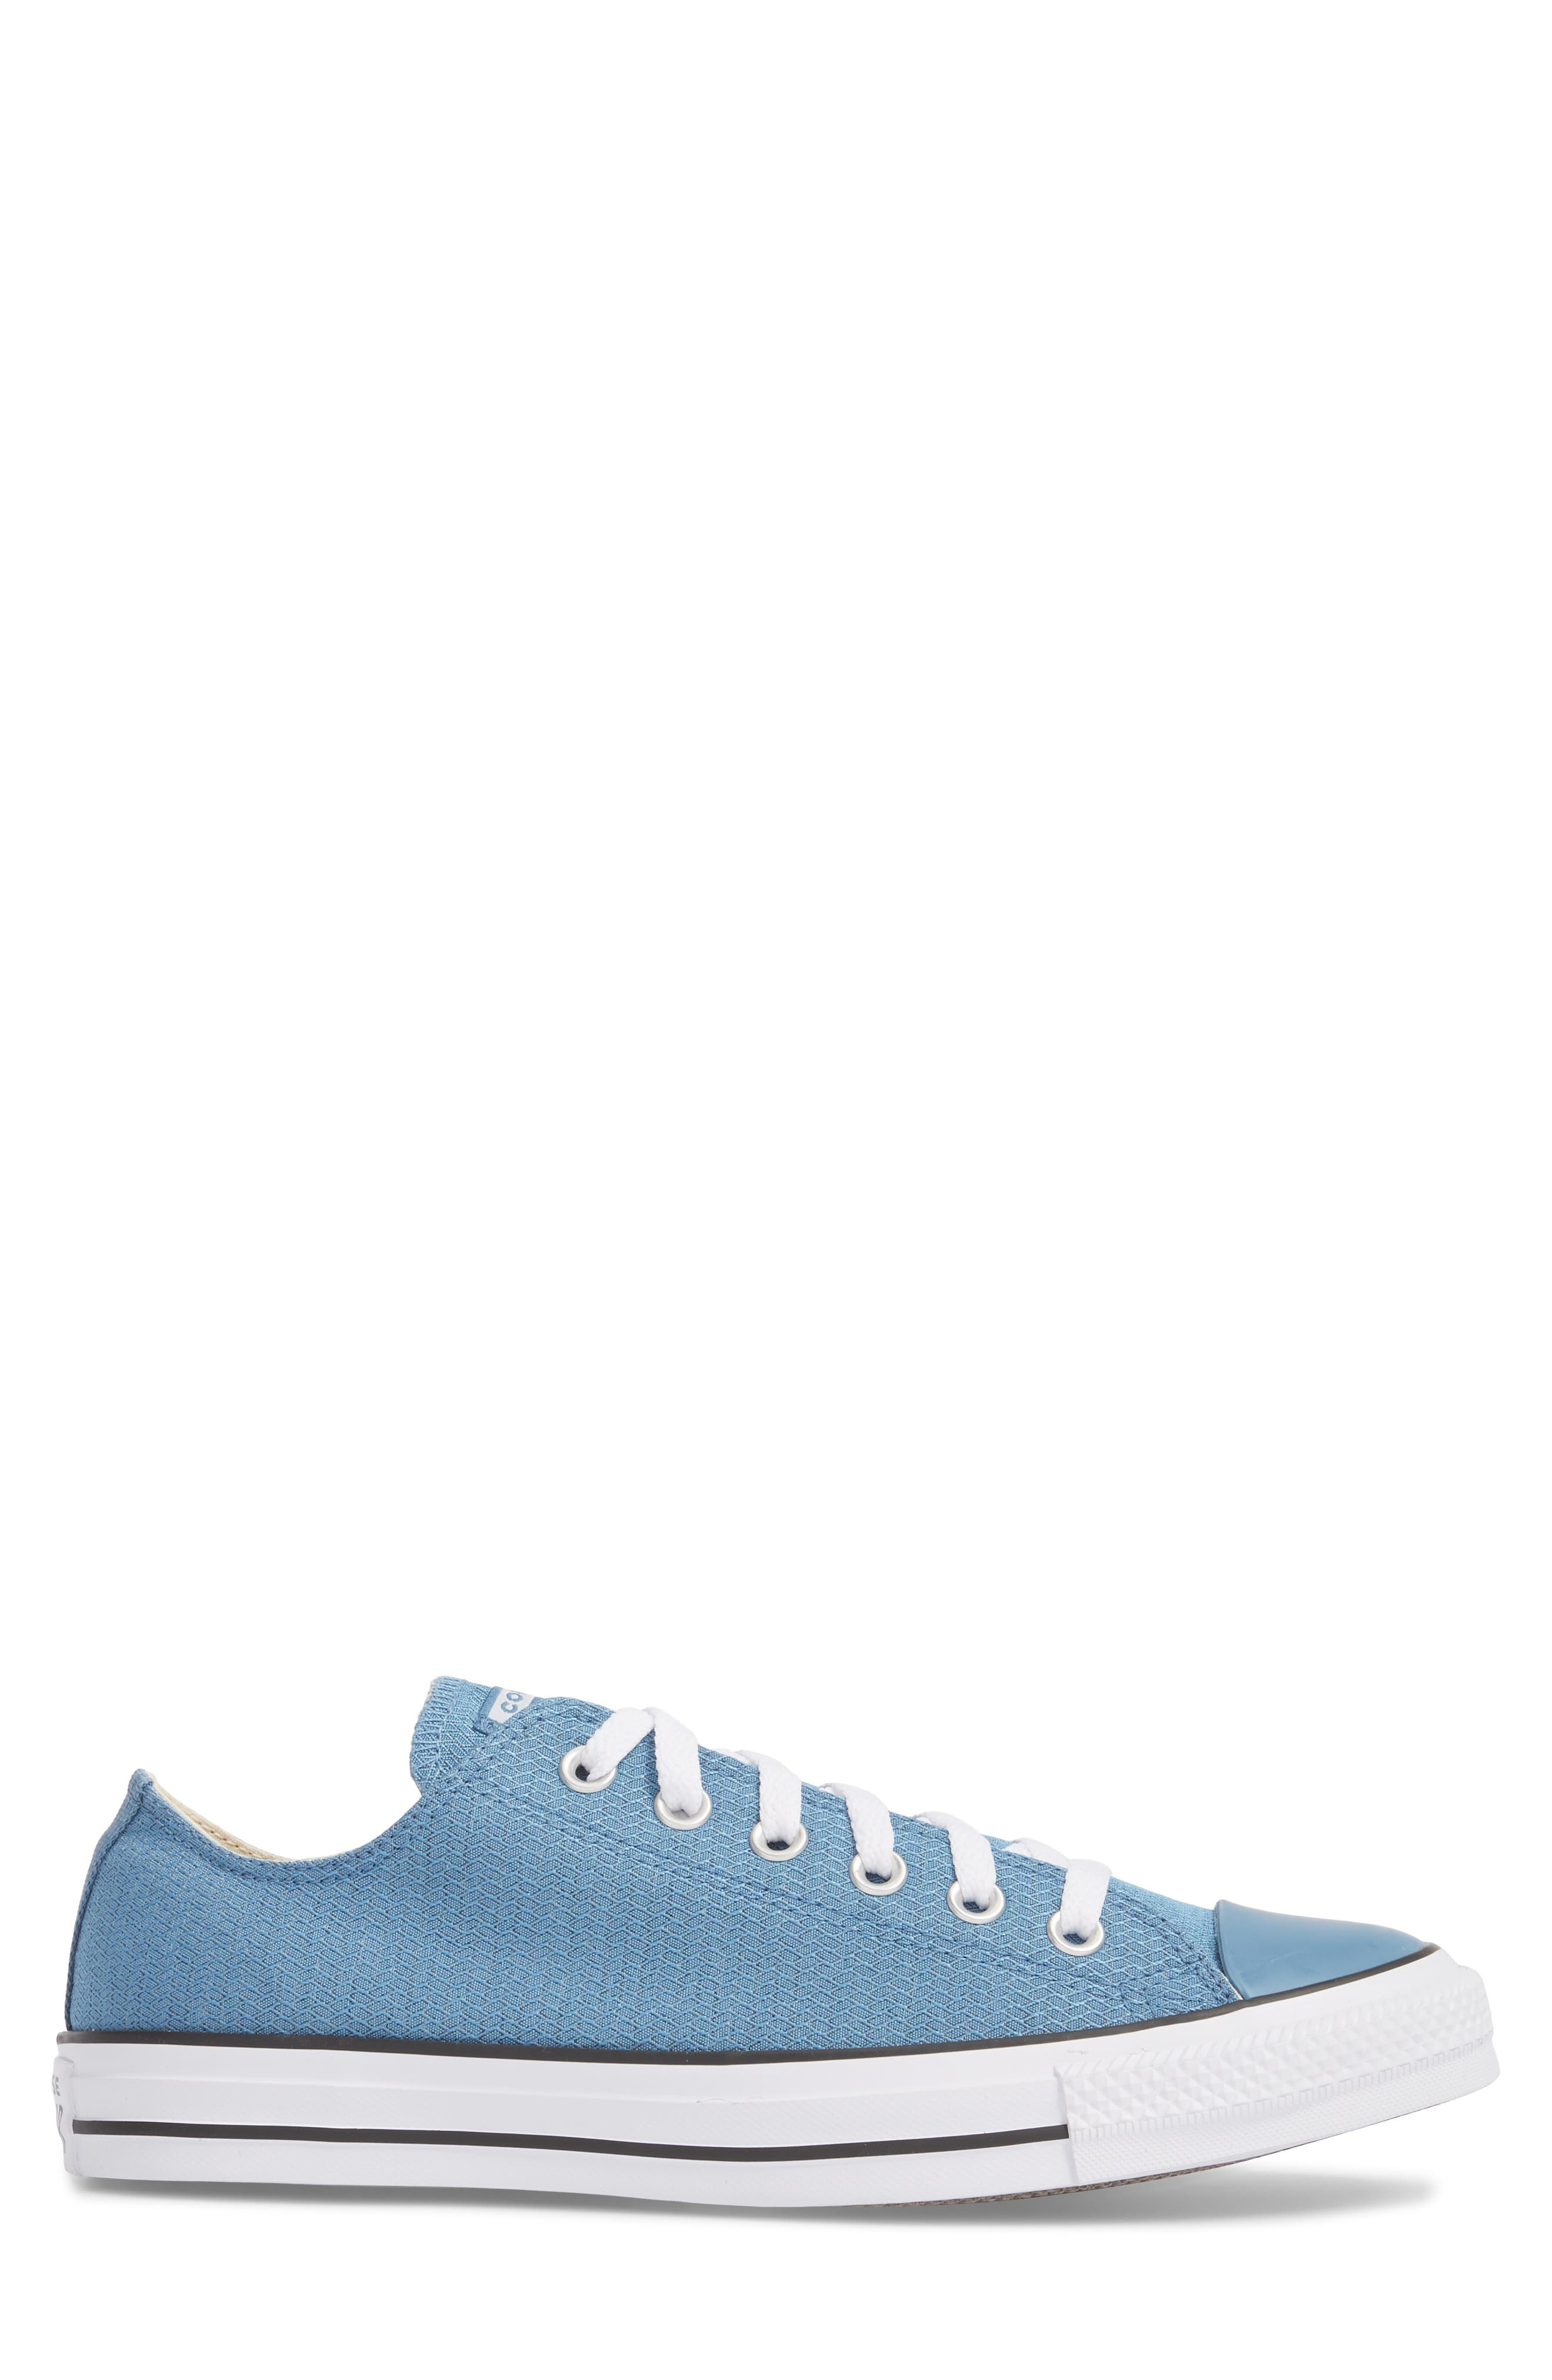 All Star<sup>®</sup> Ripstop Low Top Sneaker,                             Alternate thumbnail 6, color,